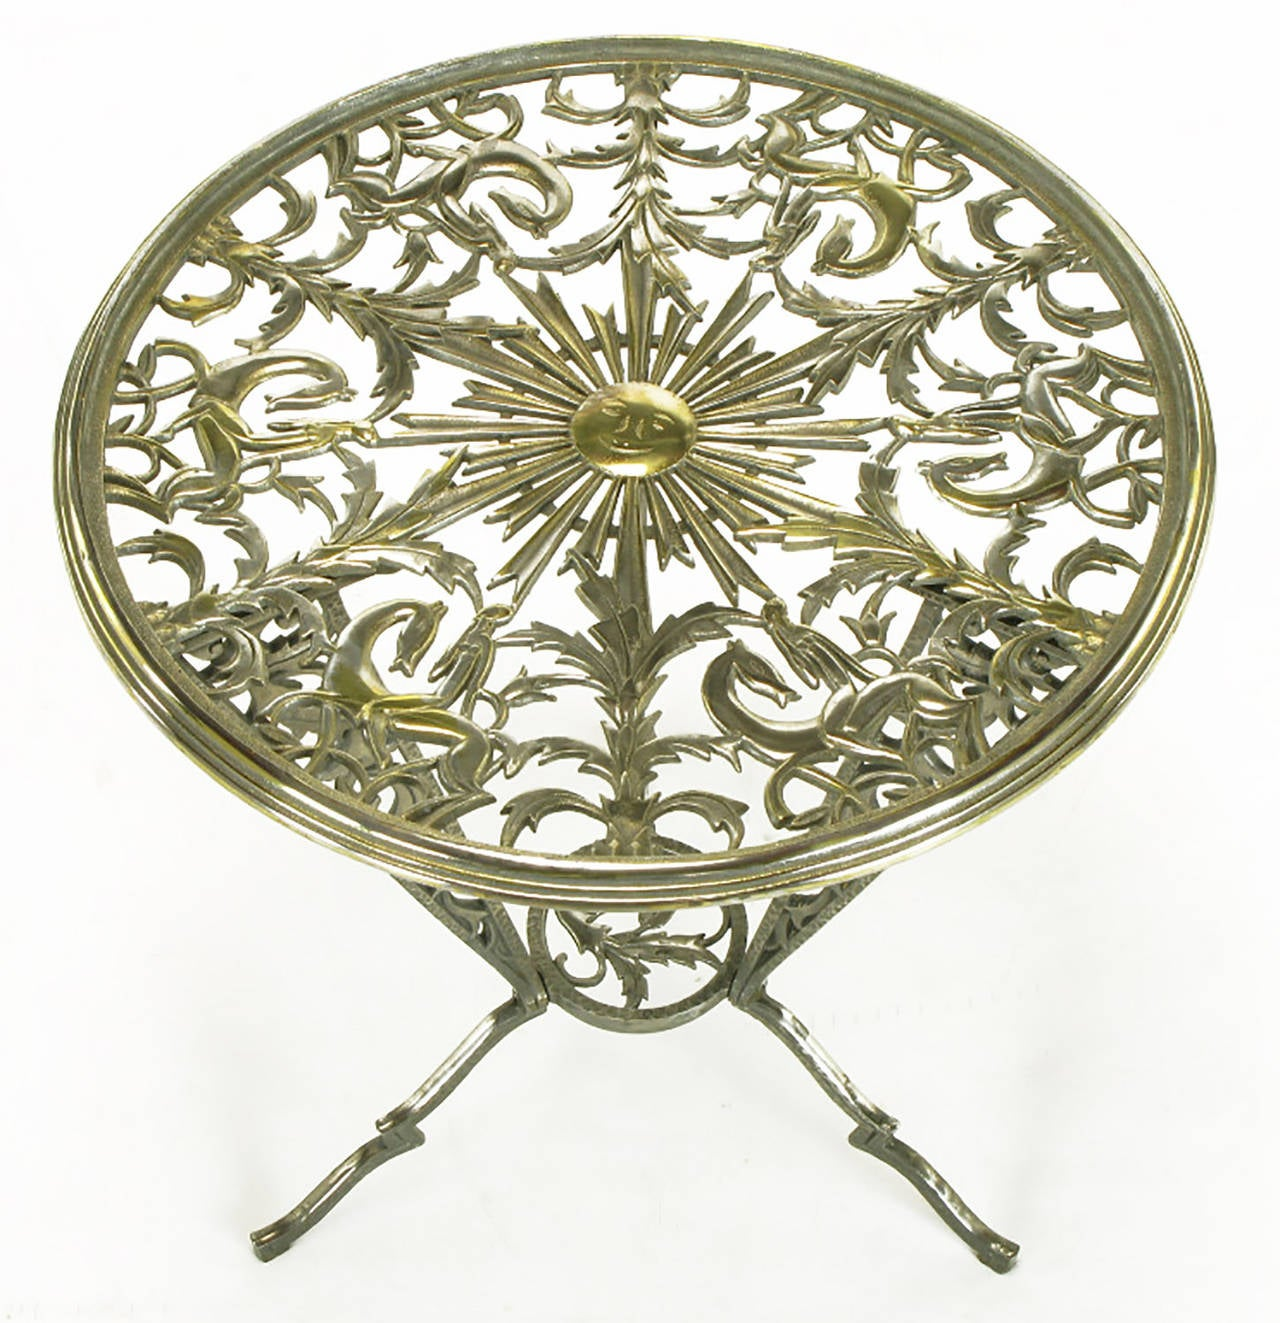 Intricately cast Art Deco tripodal side table by Rena Rosenthal. Tabletop is a beautifully detailed collage of foliage, African women on horses, and a beaming center sun with smiling face. Beveled top edge for a round glass insert. Three legs with